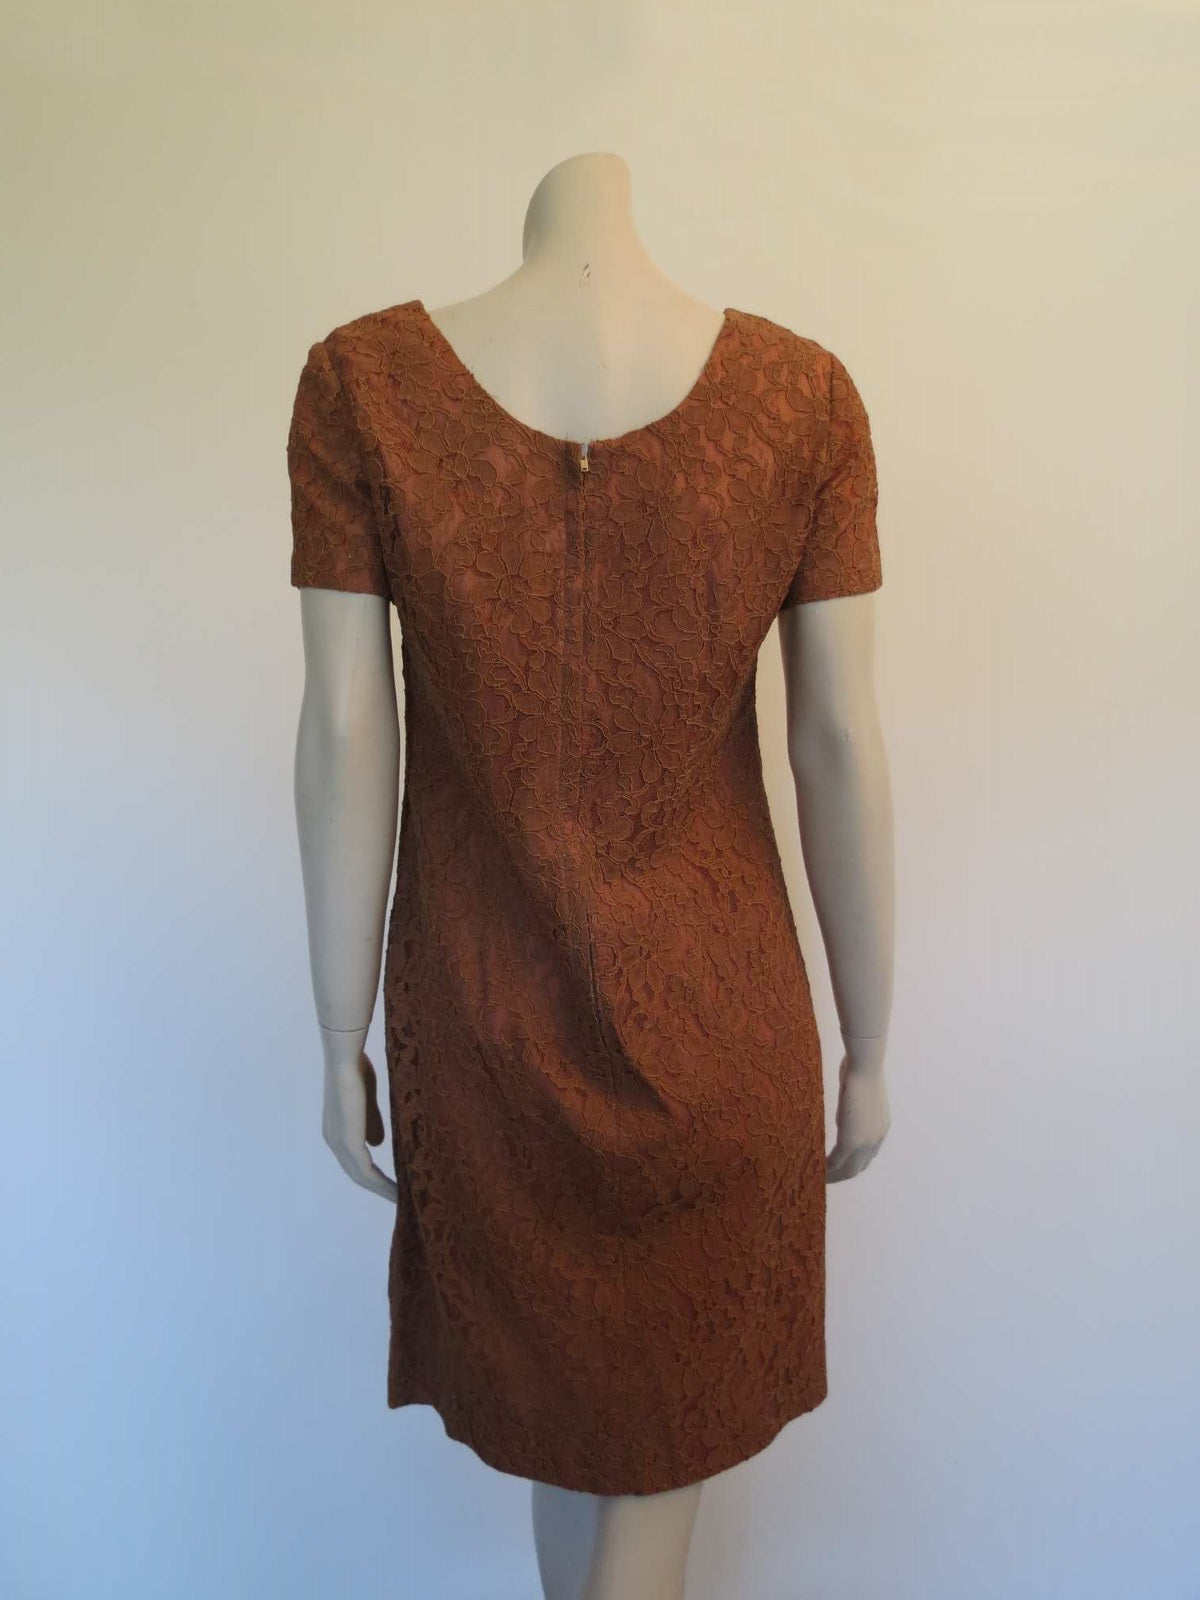 1960s vintage brown alencon lace shift dress